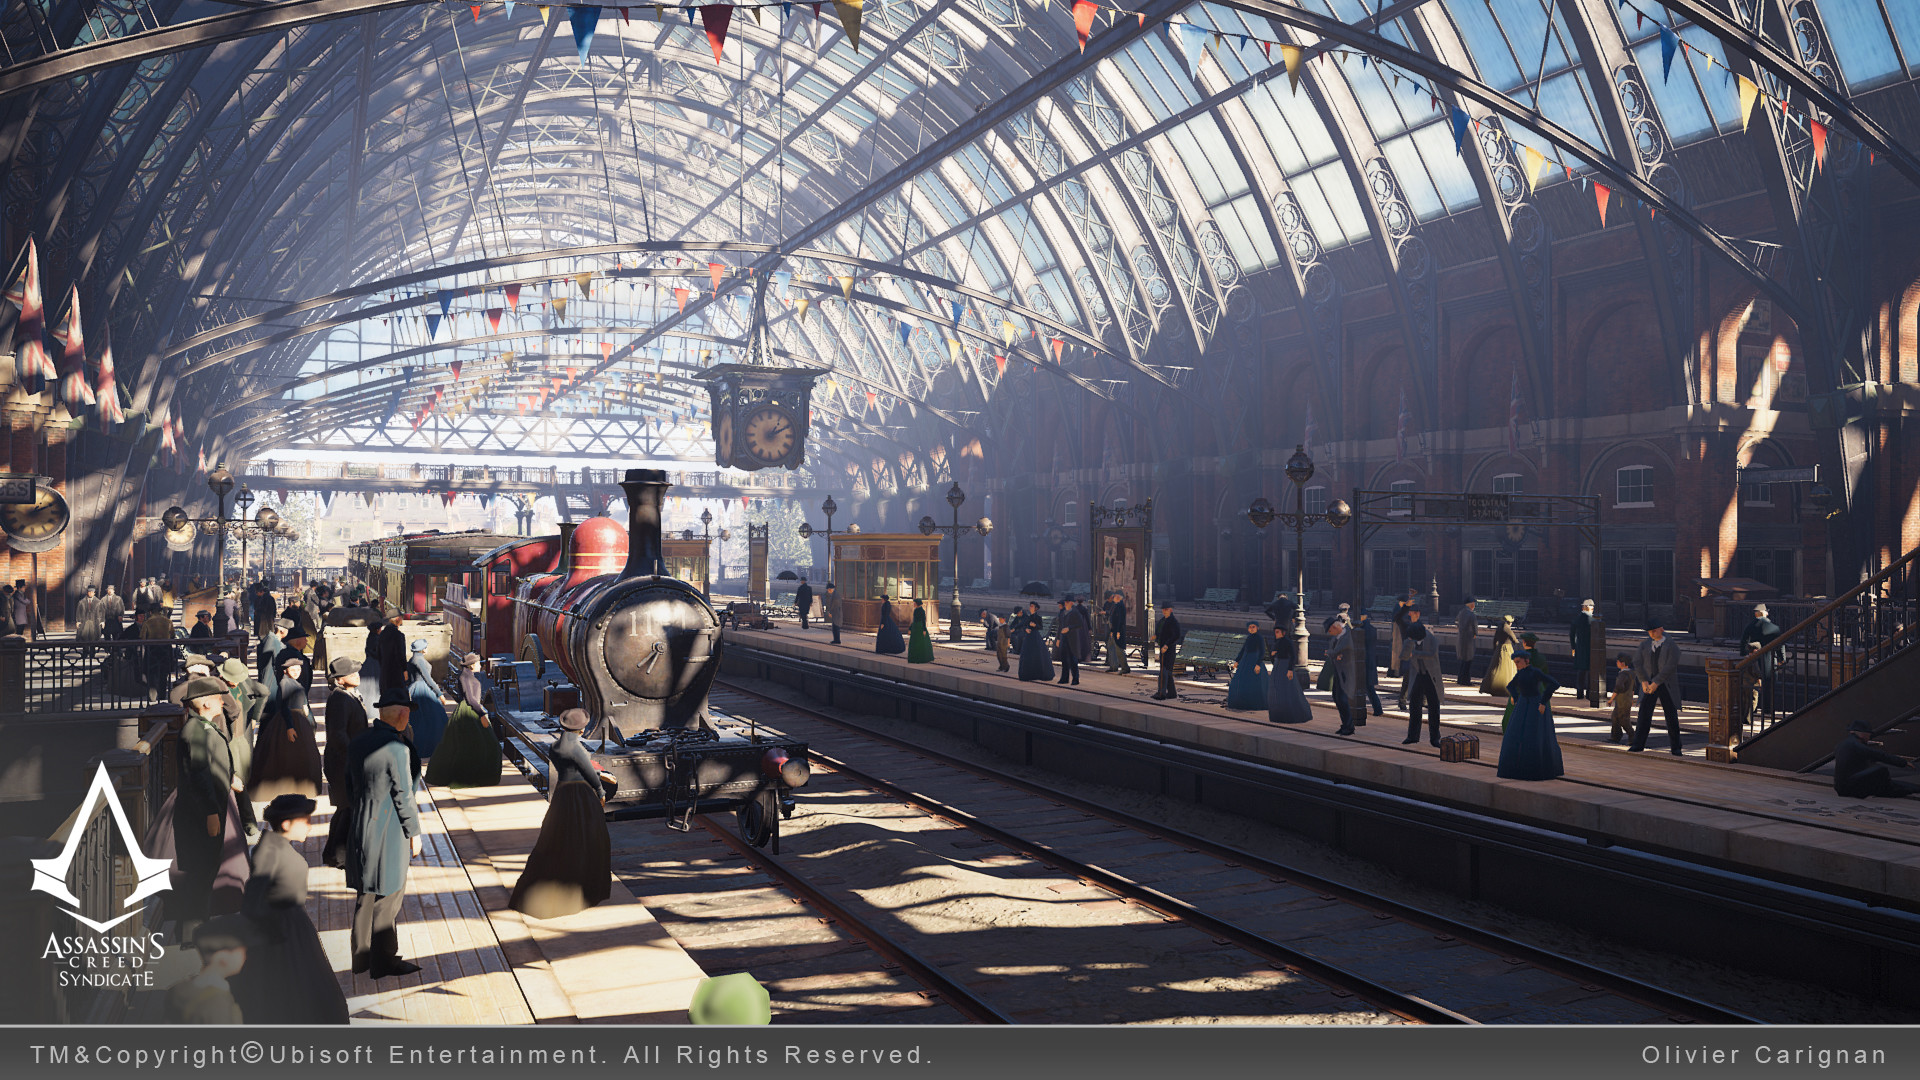 ArtStation - Assassin's Creed Syndicate Train Stations, Olivier Carignan